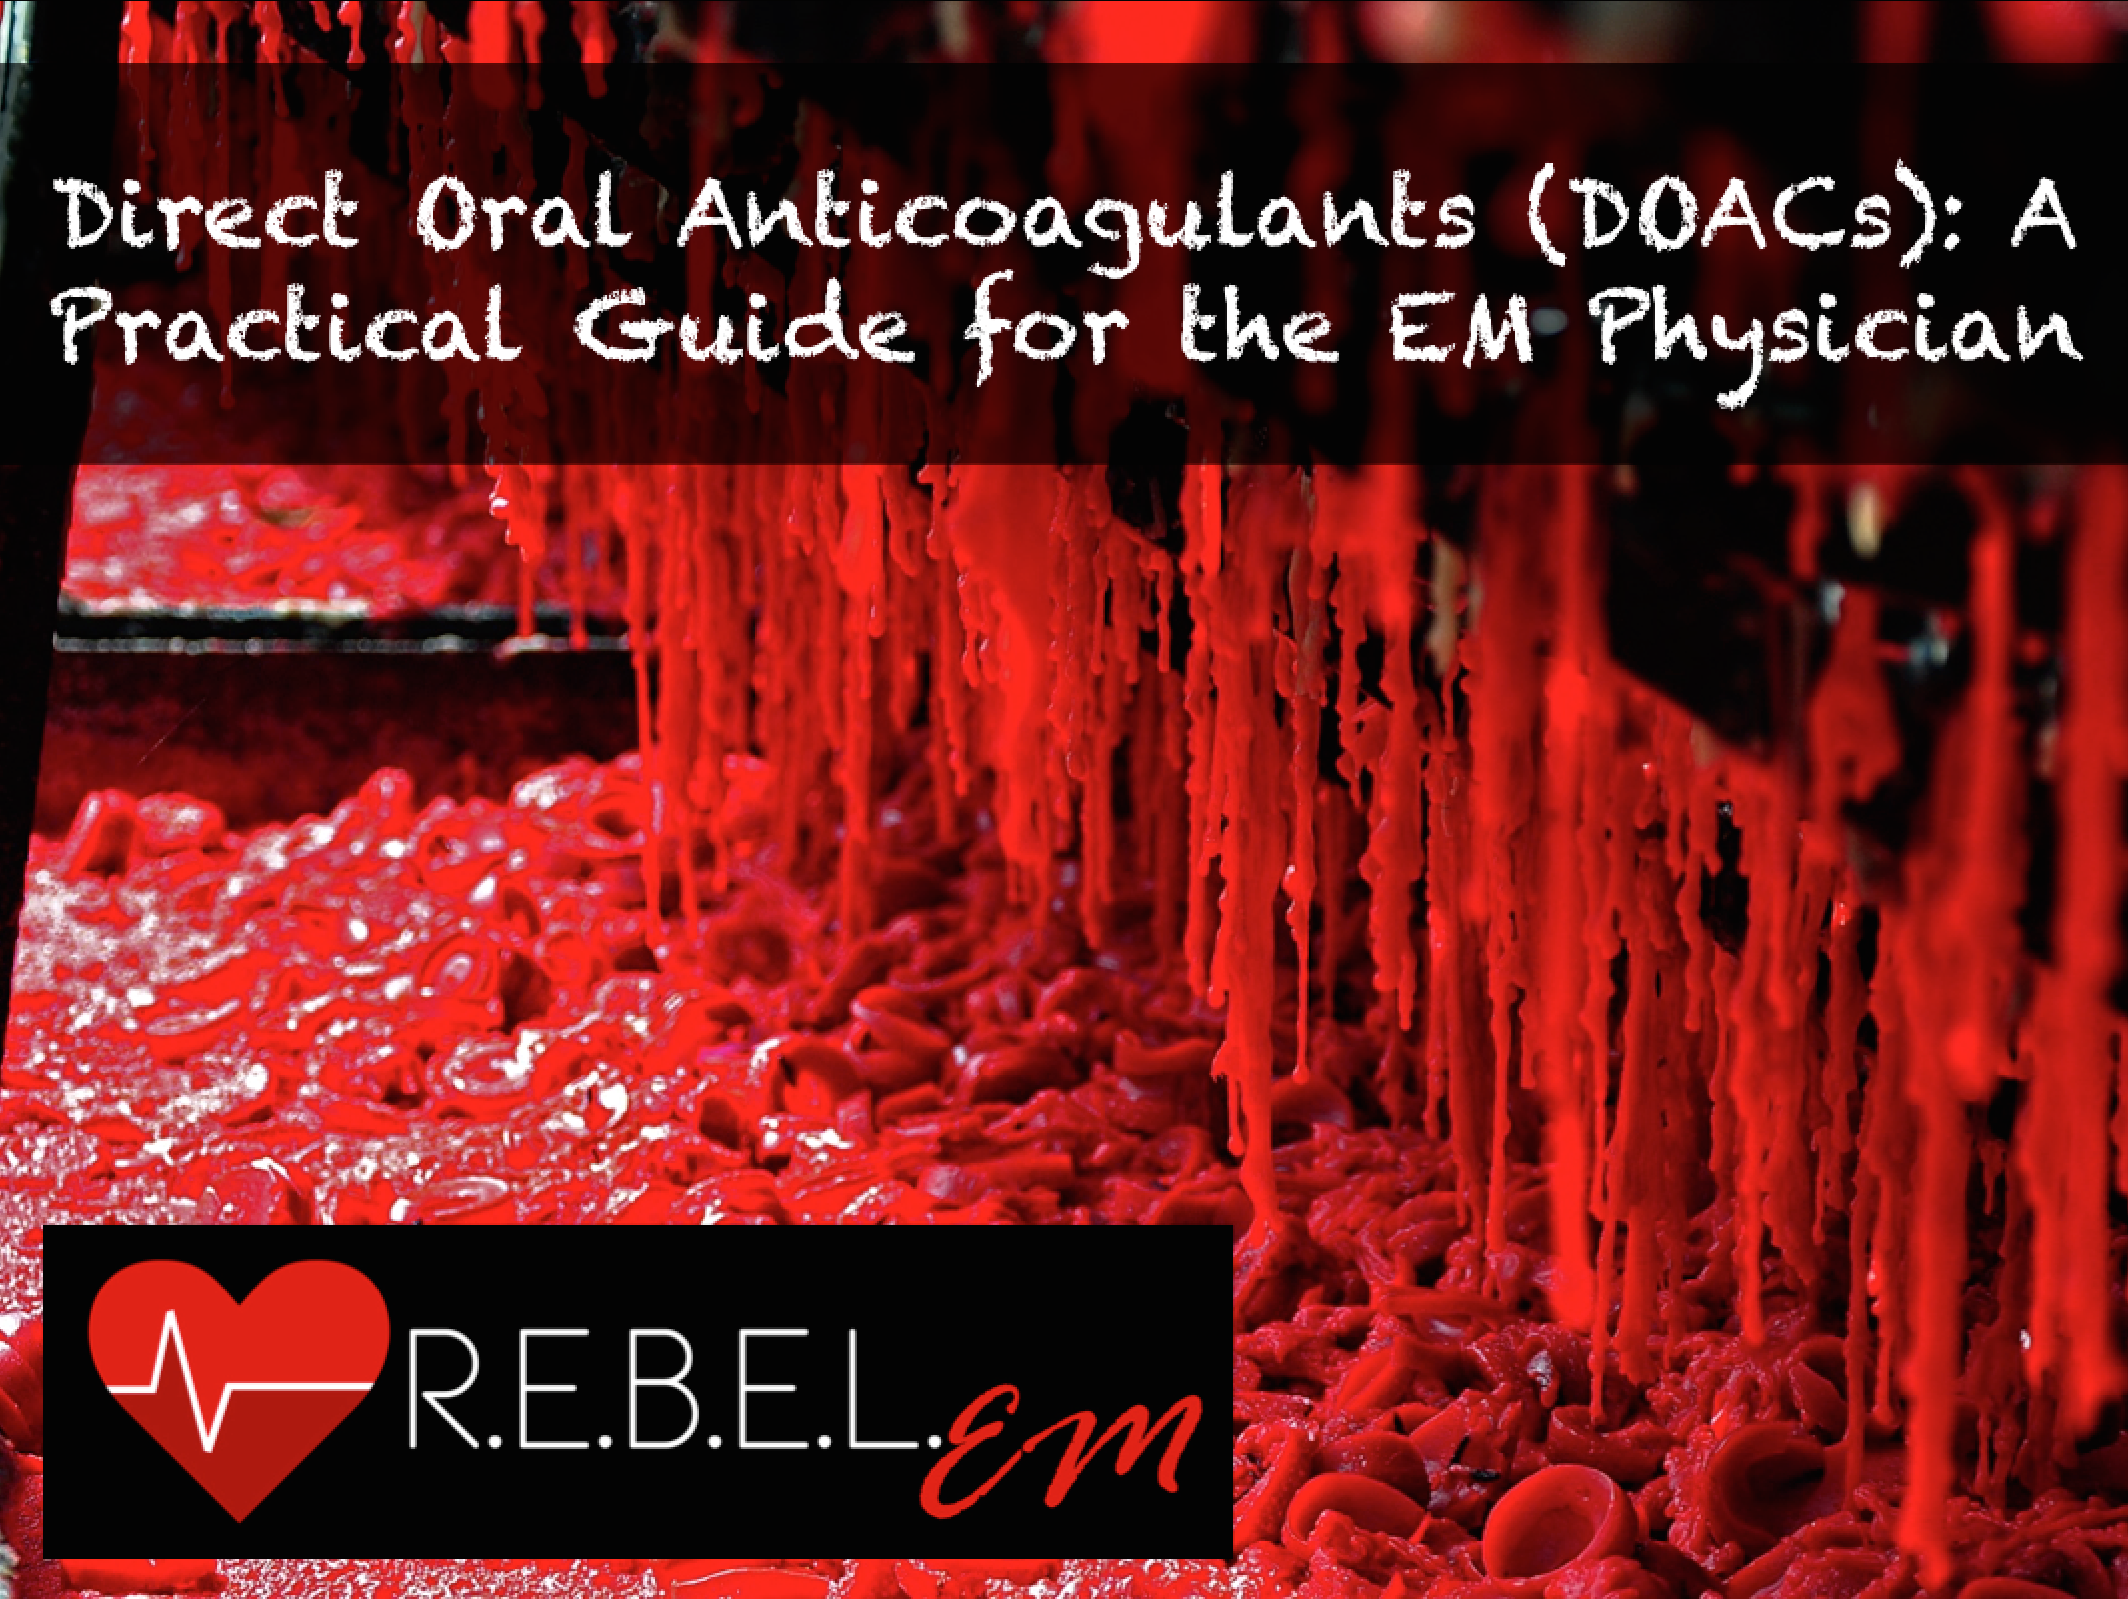 Direct Oral Anticoagulants (DOACs) A Practical Guide for